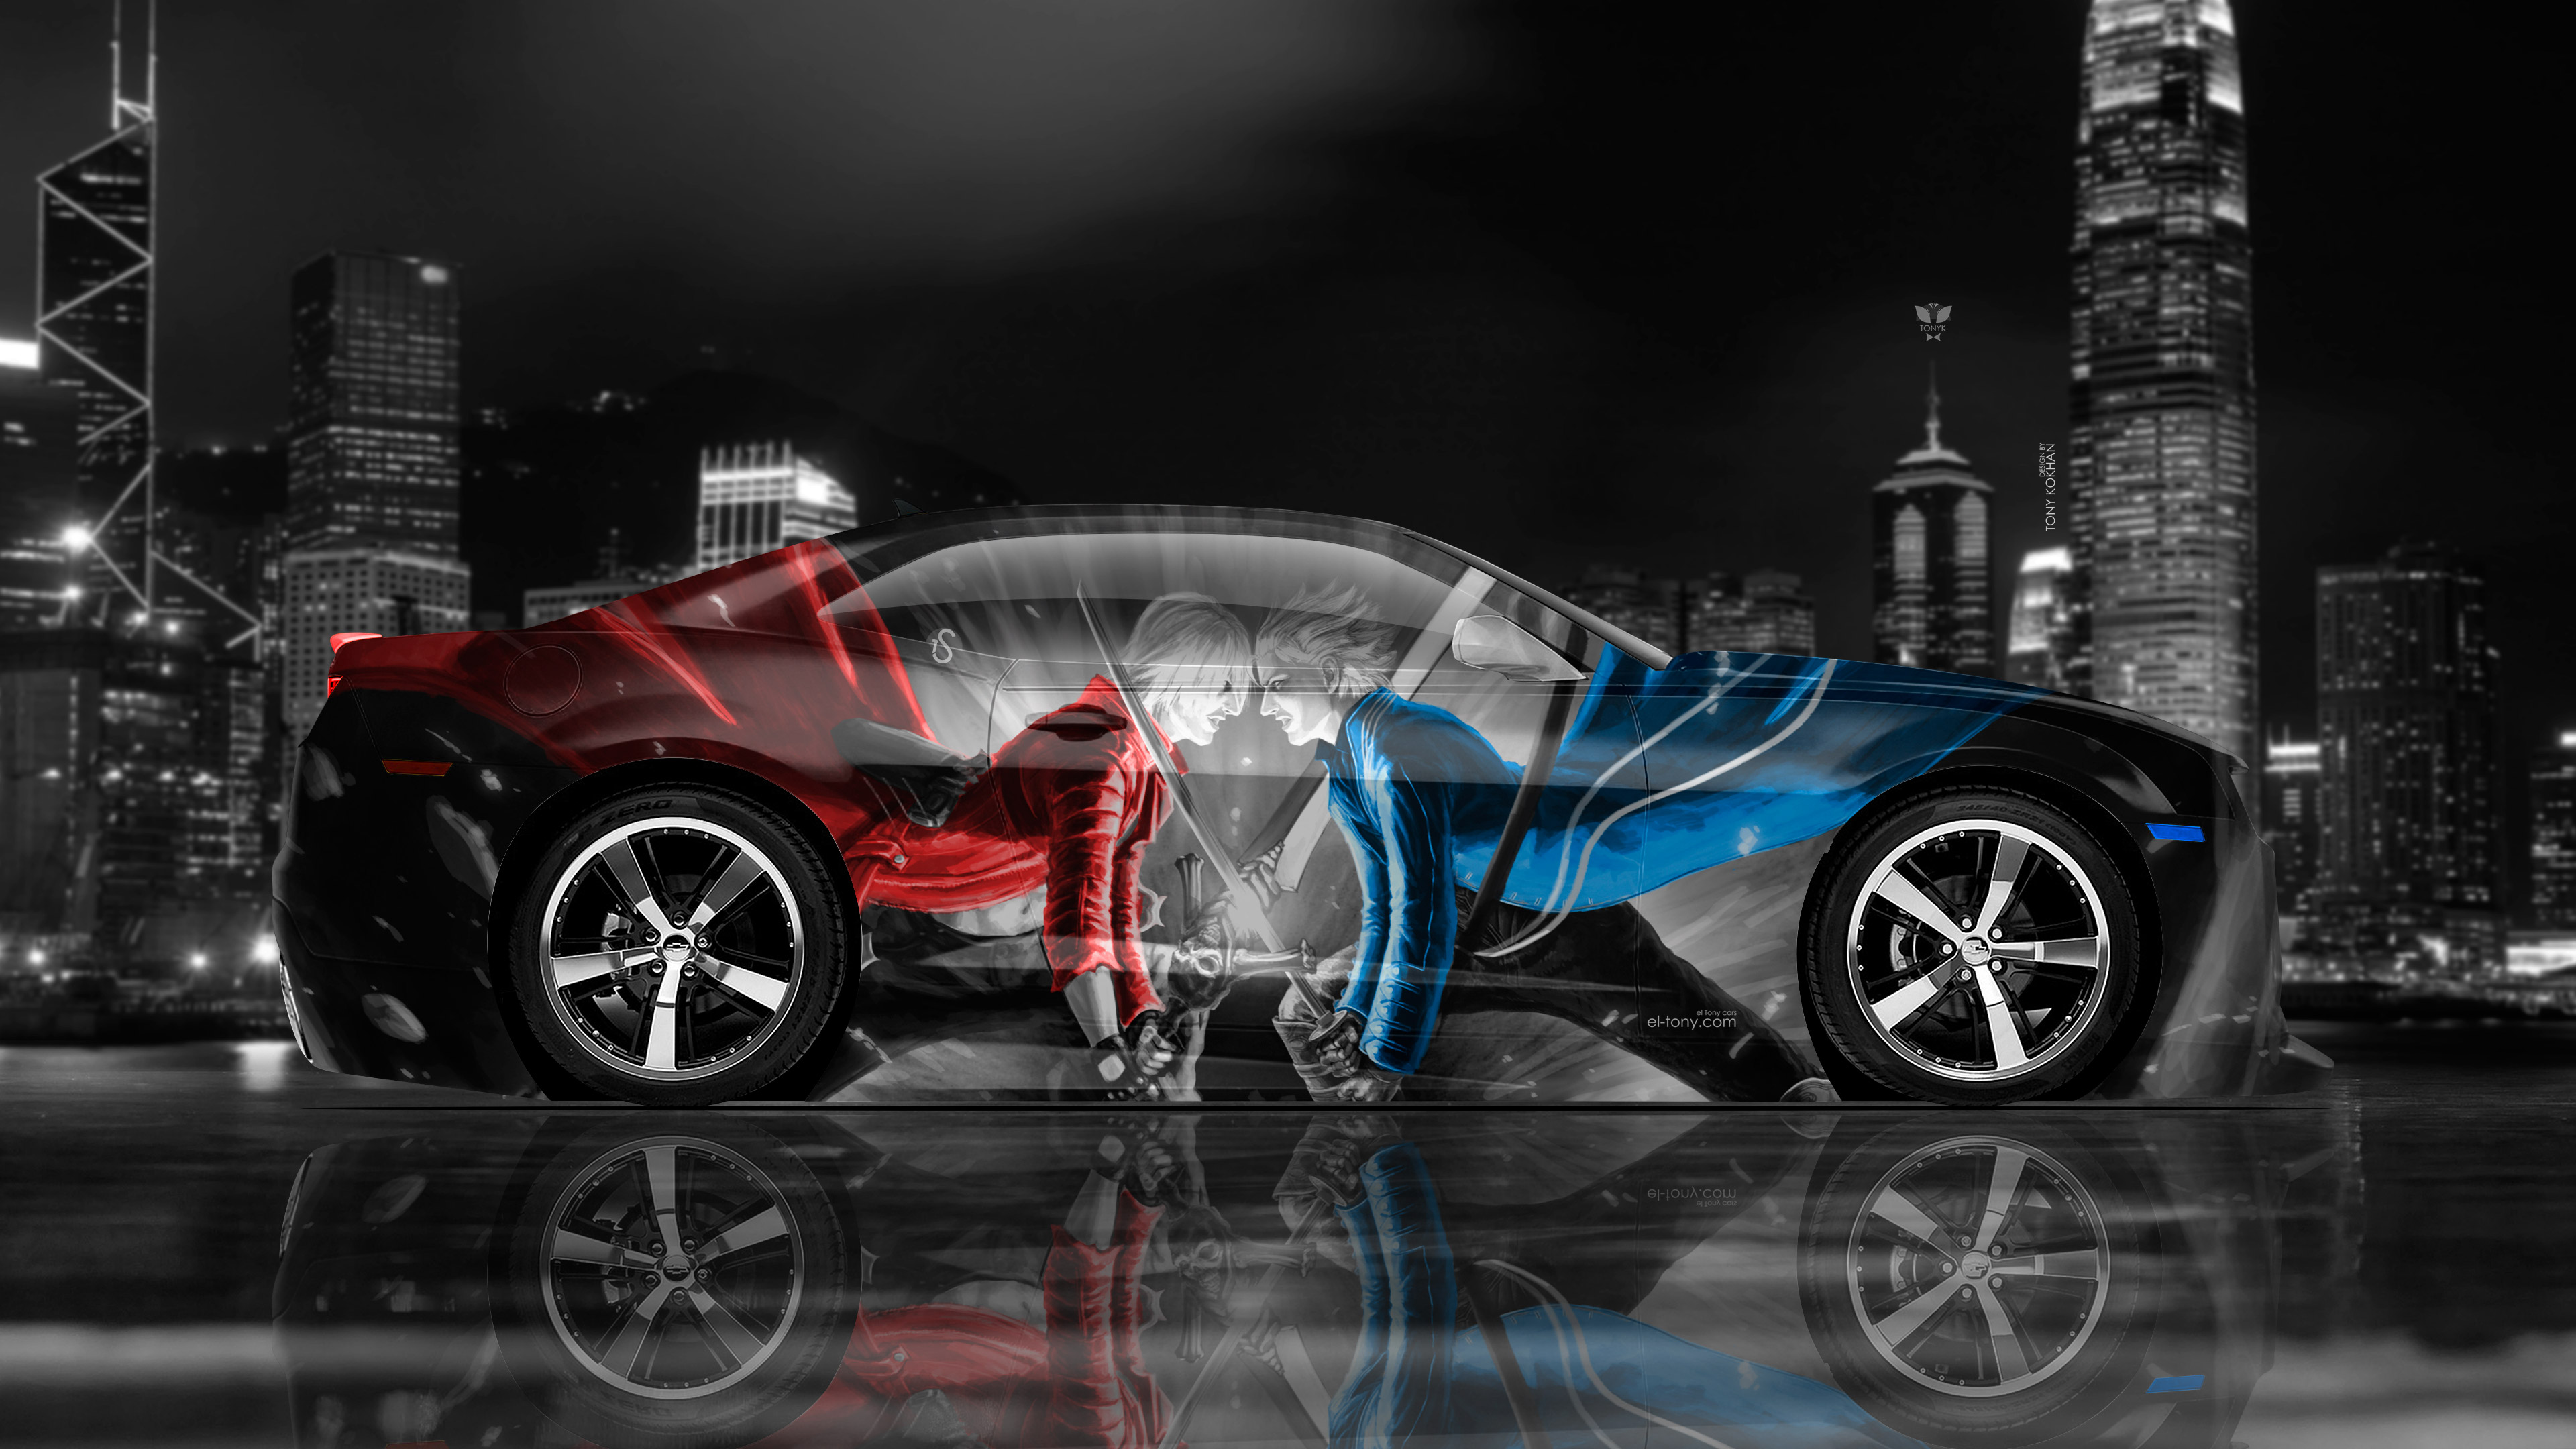 Chevrolet-Camaro-Muscle-Side-Super-Devil-My-Cry-Game-Aerography-Night-City-Art-Car-2018-Red-Blue-White-Black-Colors-4K-Wallpapers-design-by-Tony-Kokhan-www.el-tony.com-image